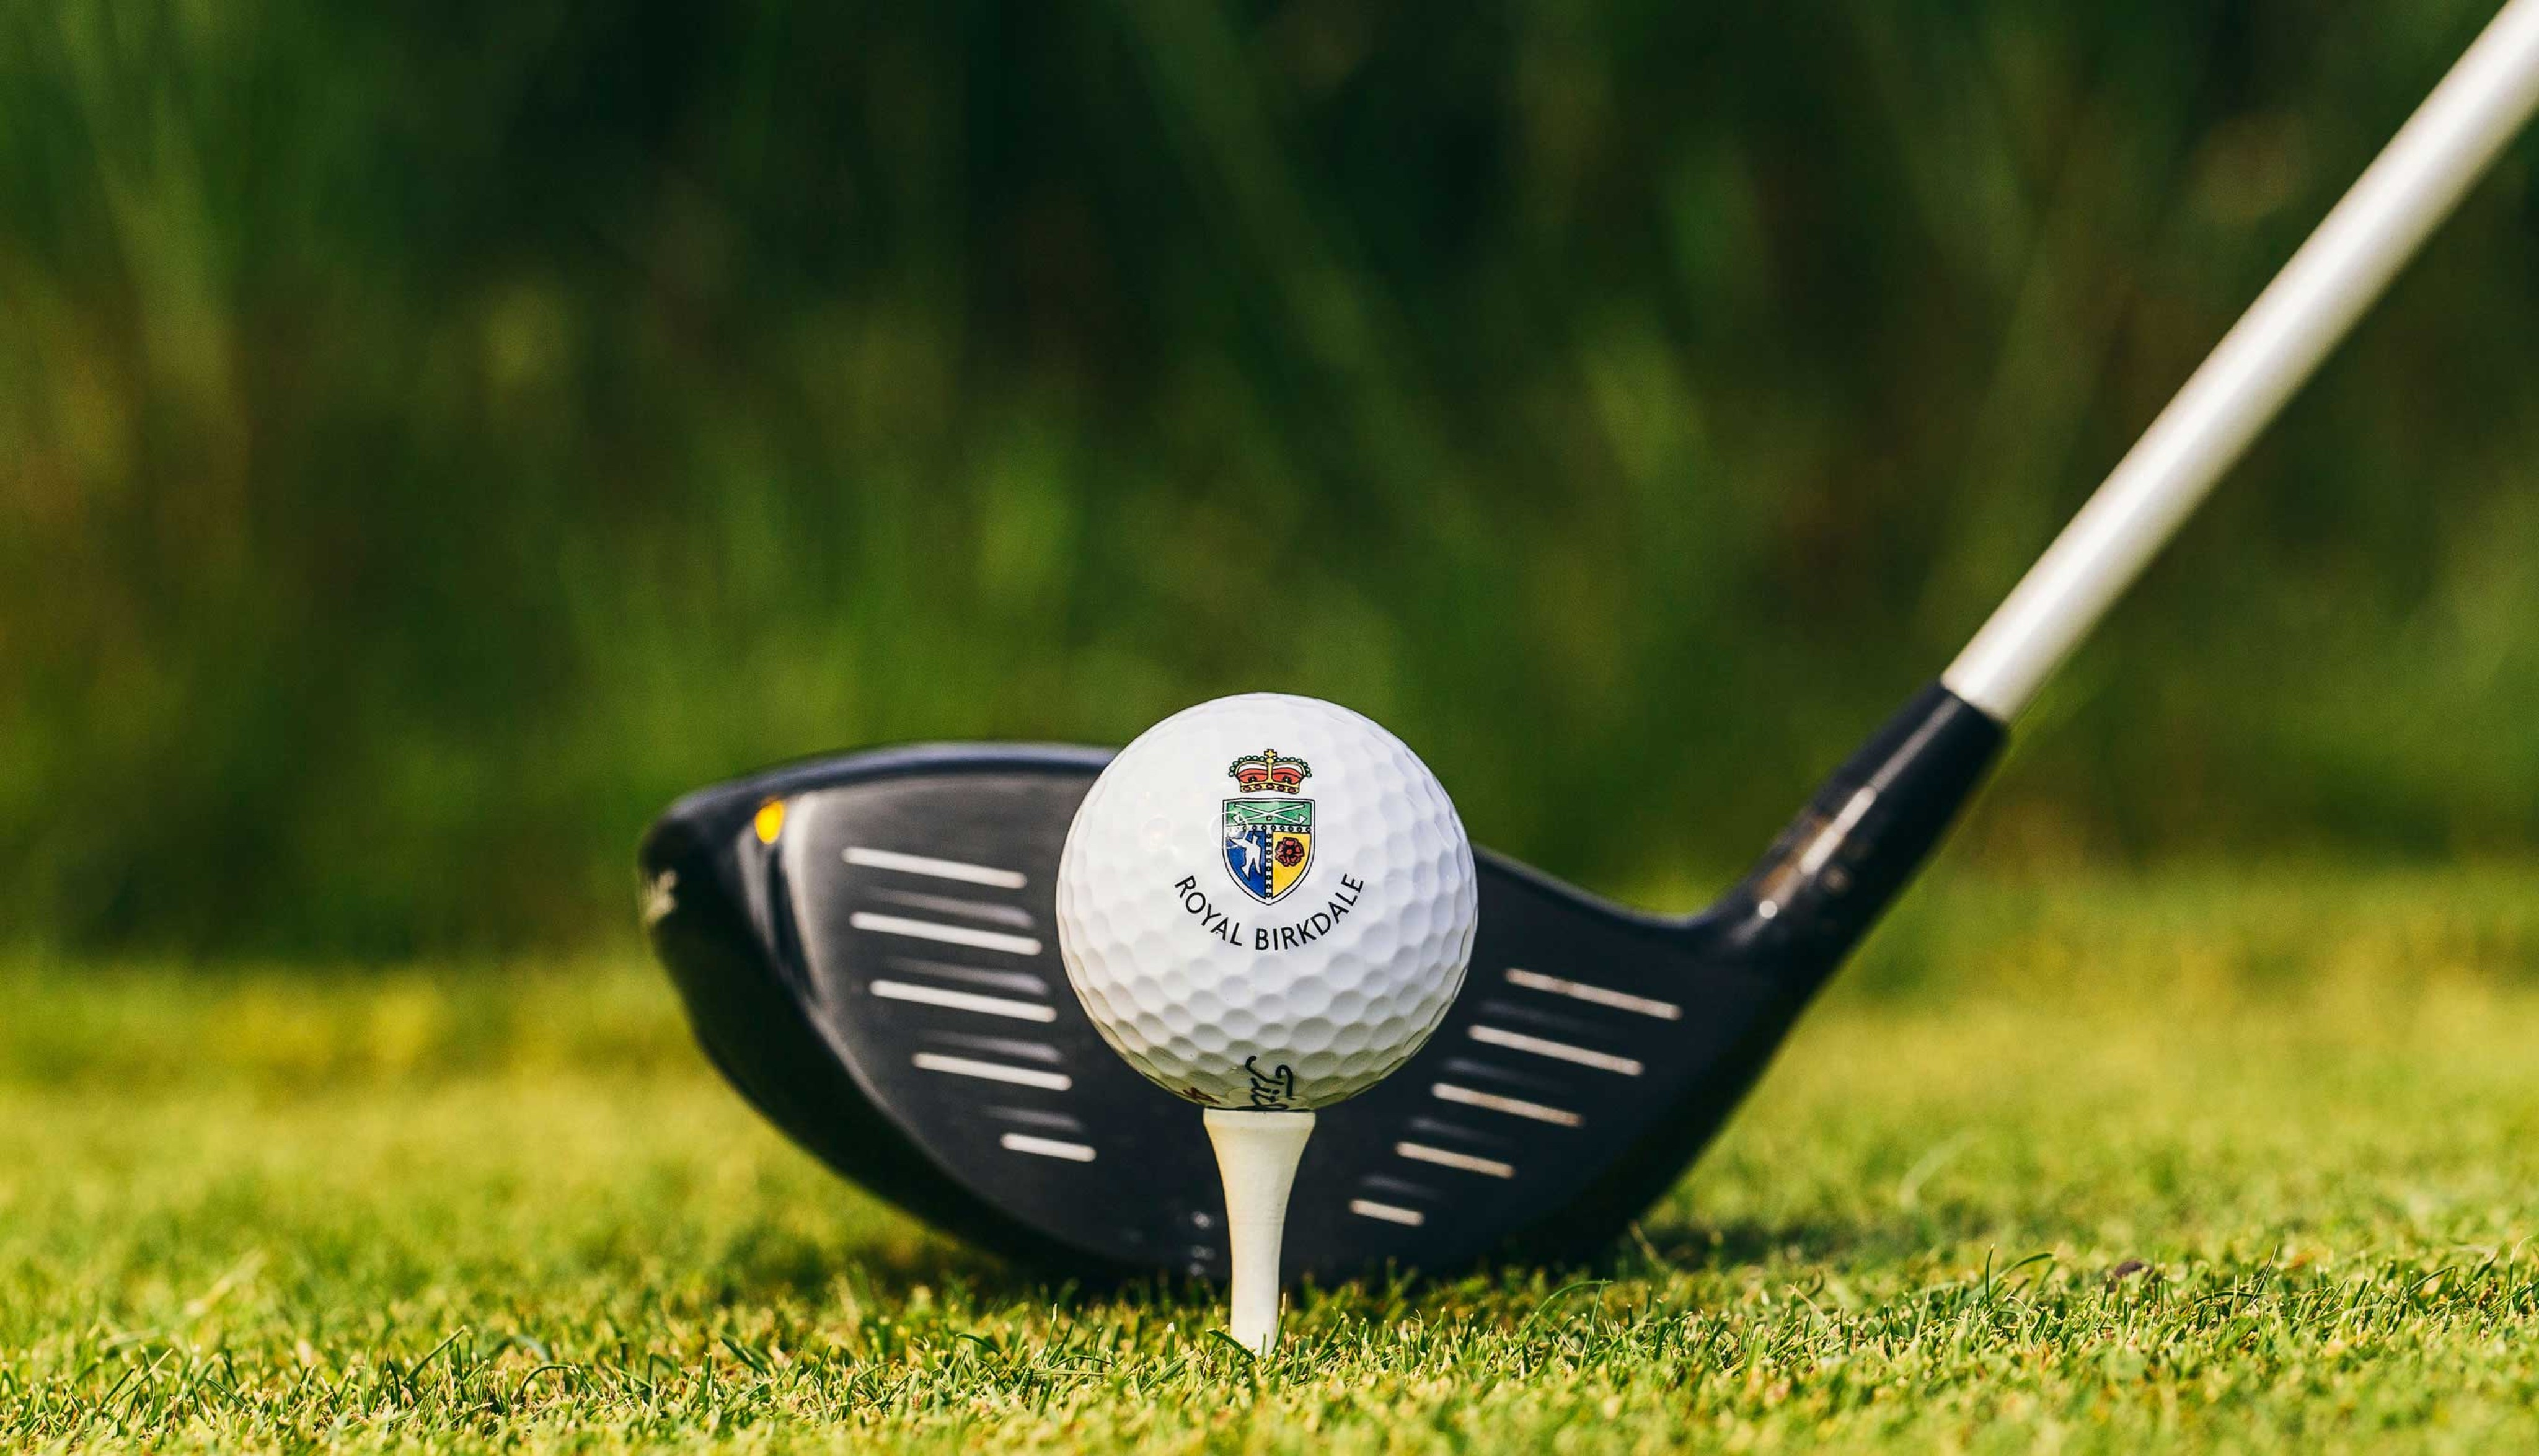 The latest golf news from the PGA Tour and LPGA tour, equipment reviews, golf club releases, new golf courses, golf instruction and more.